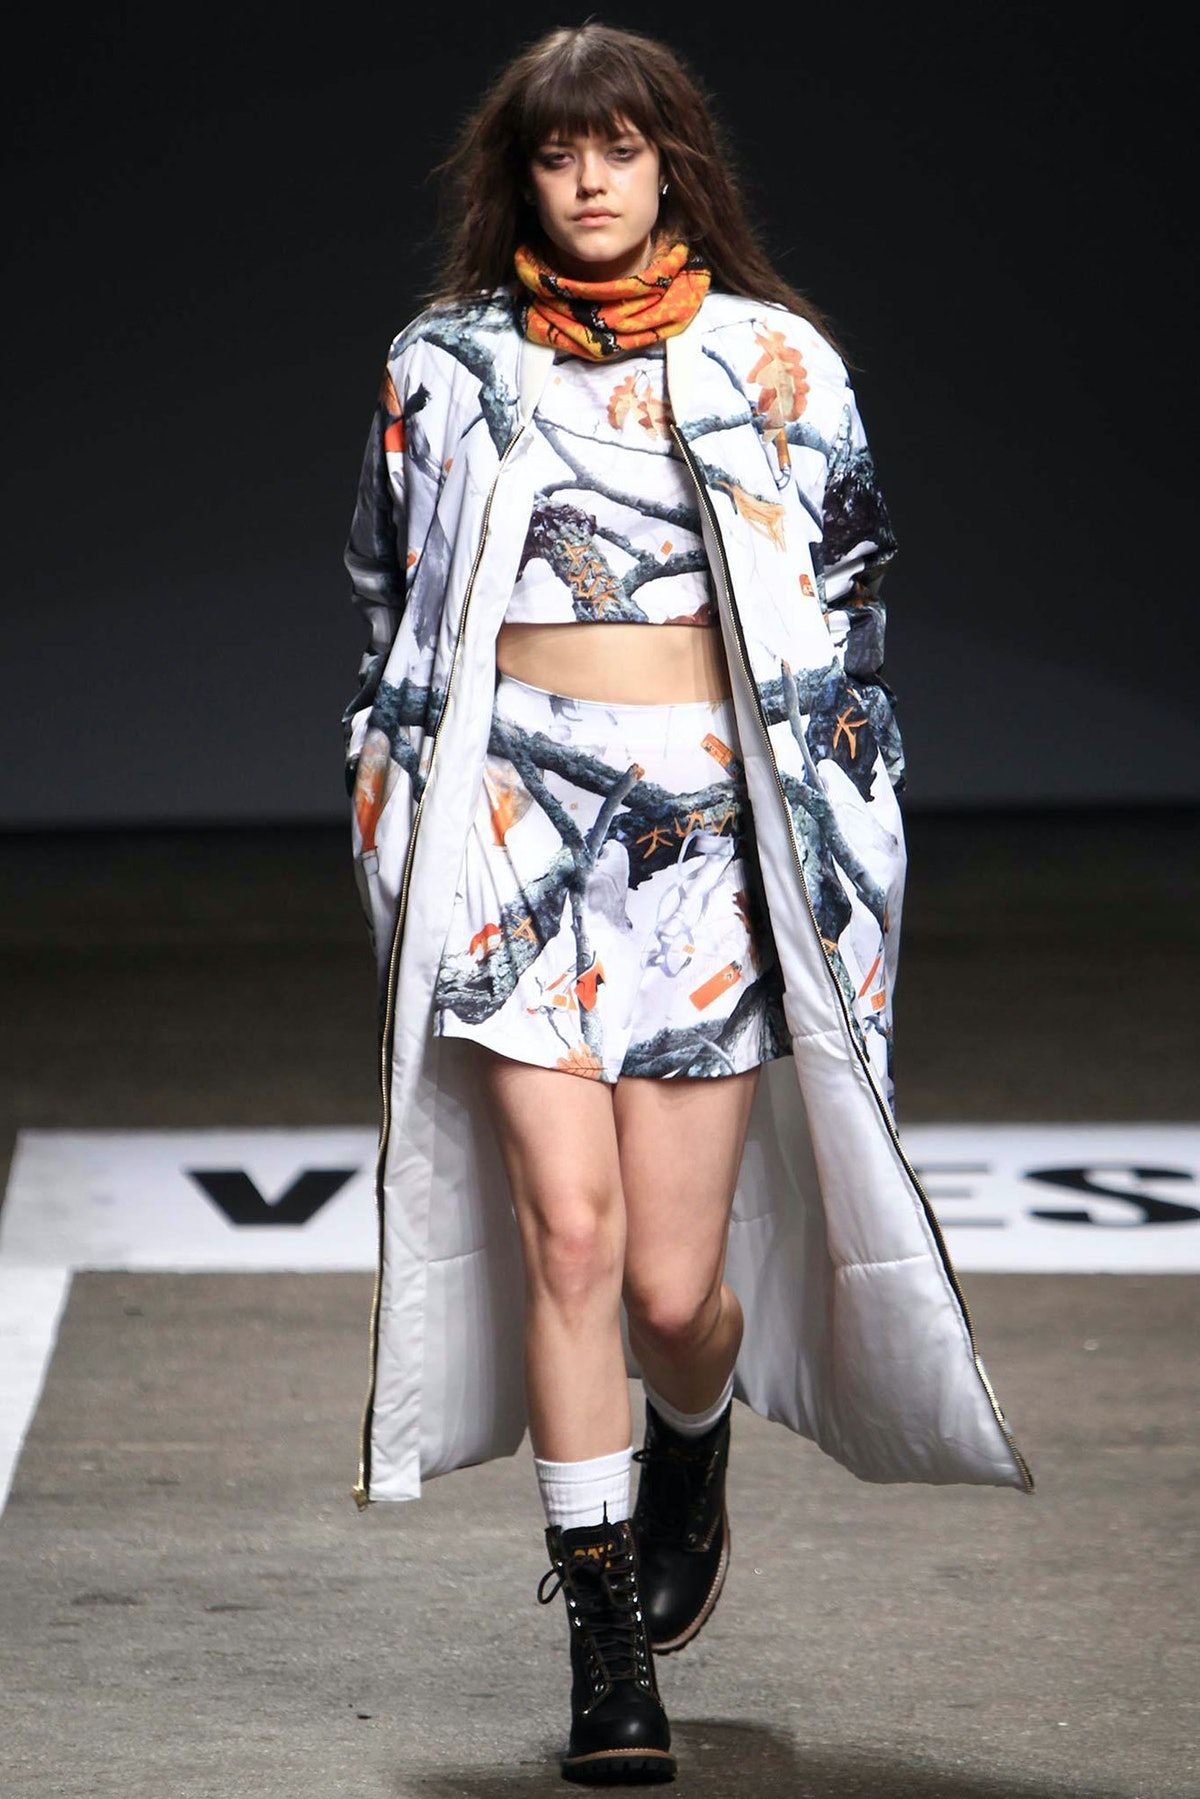 ASSK's fall runway collection